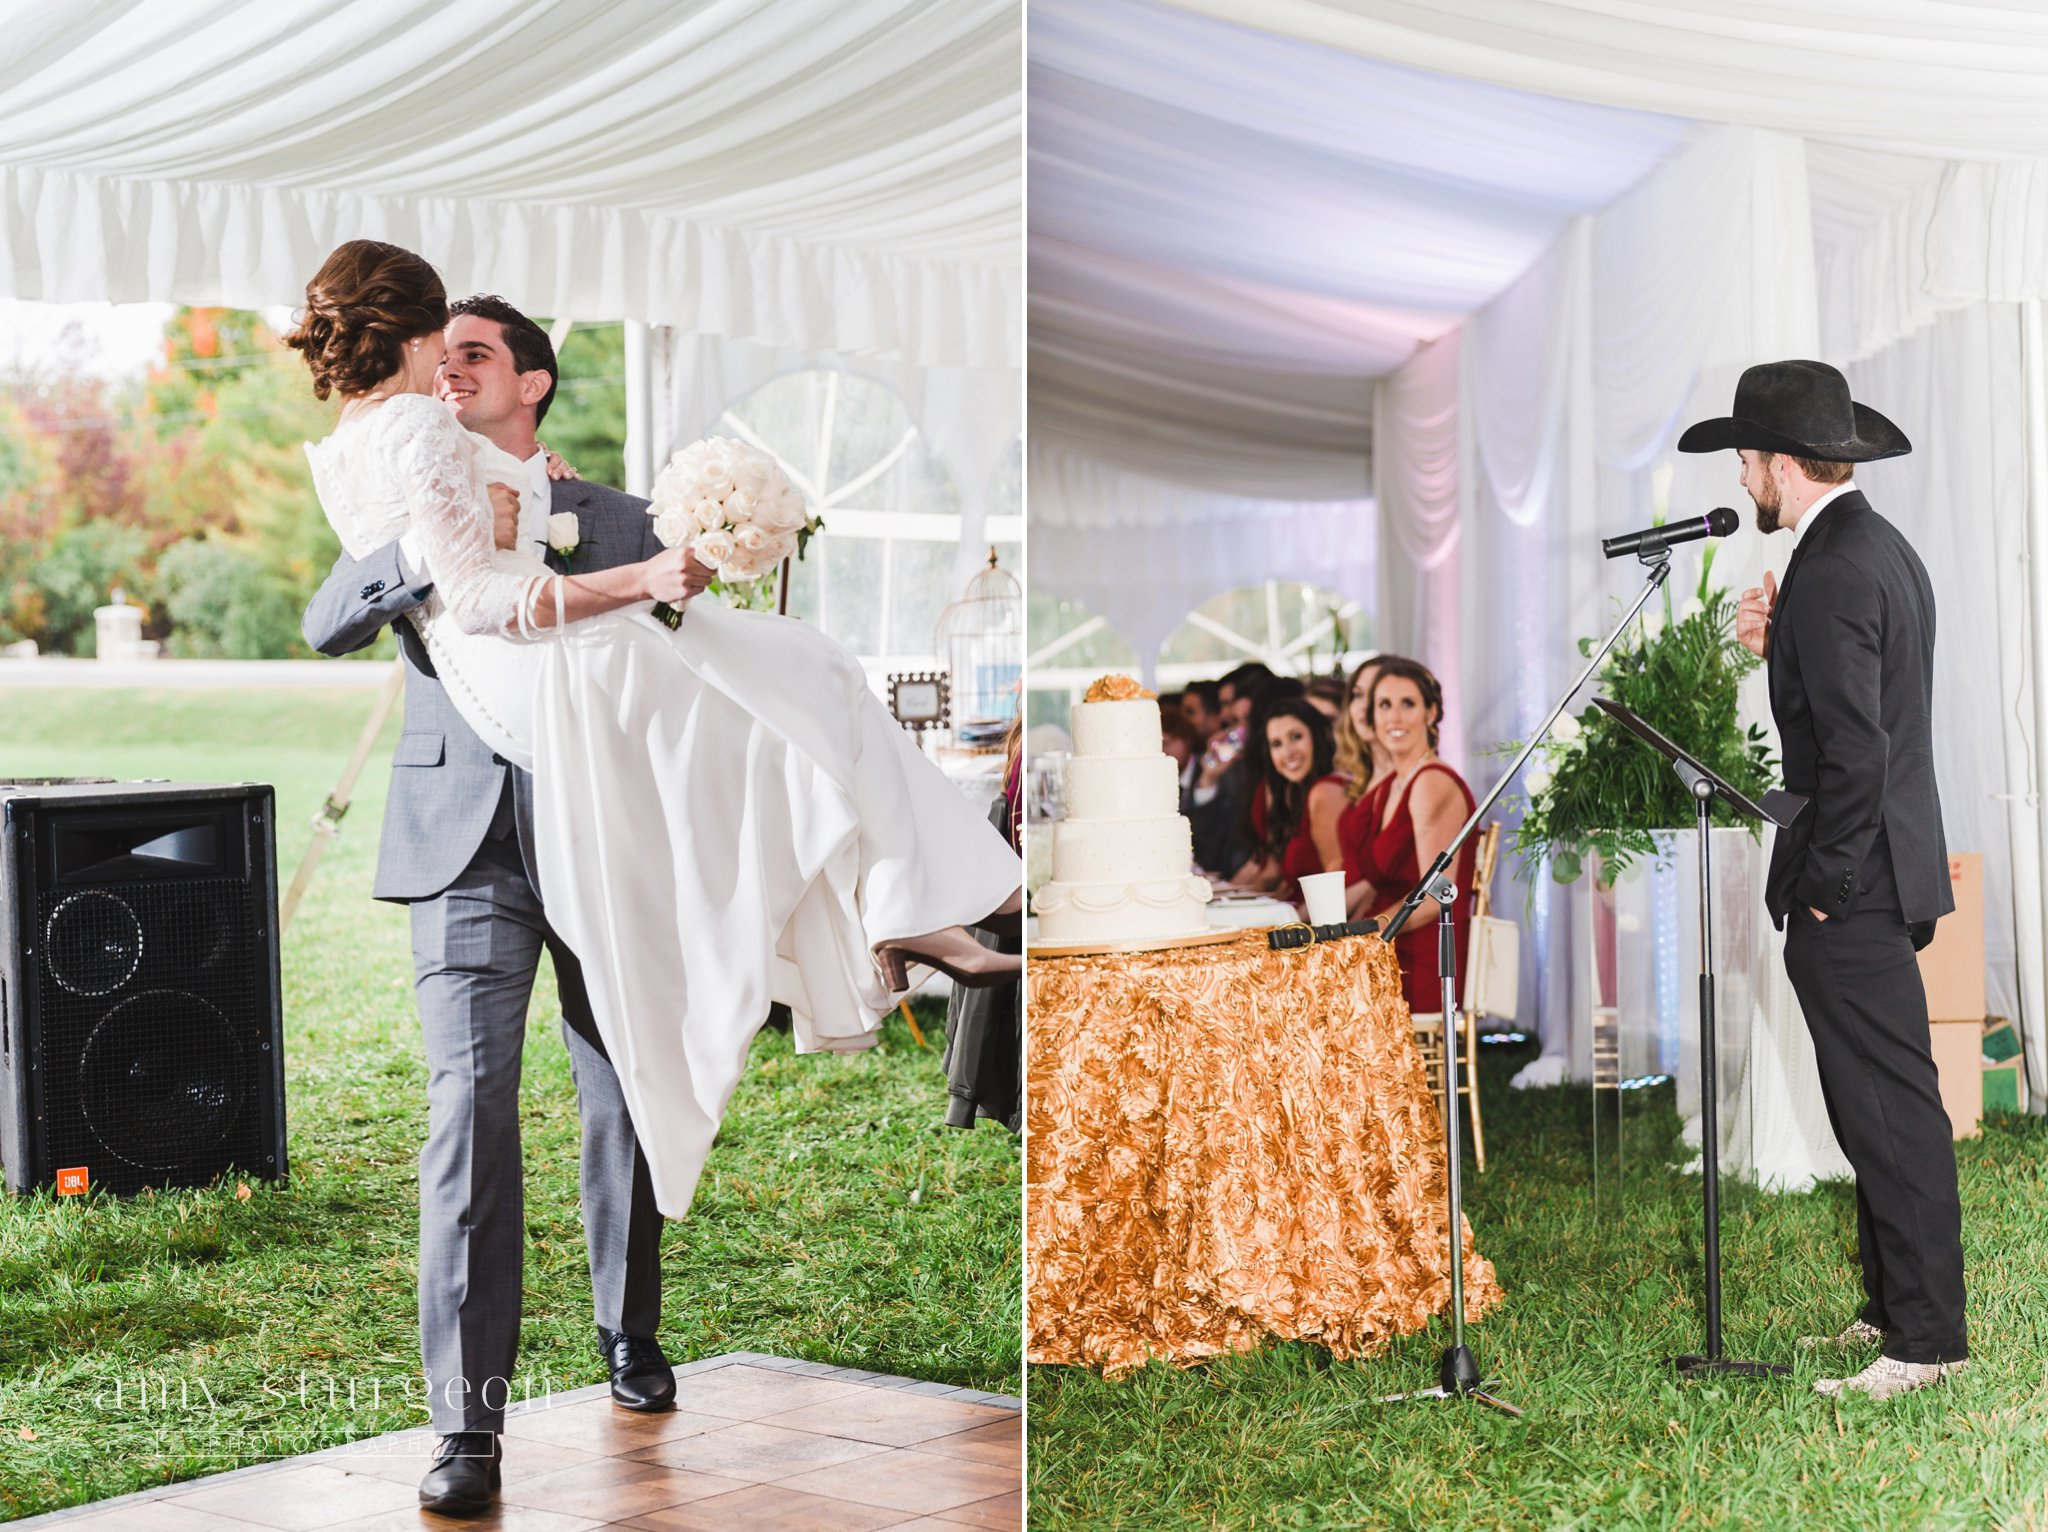 He swept her off her feet for the grand entrance at the alpaca farm wedding